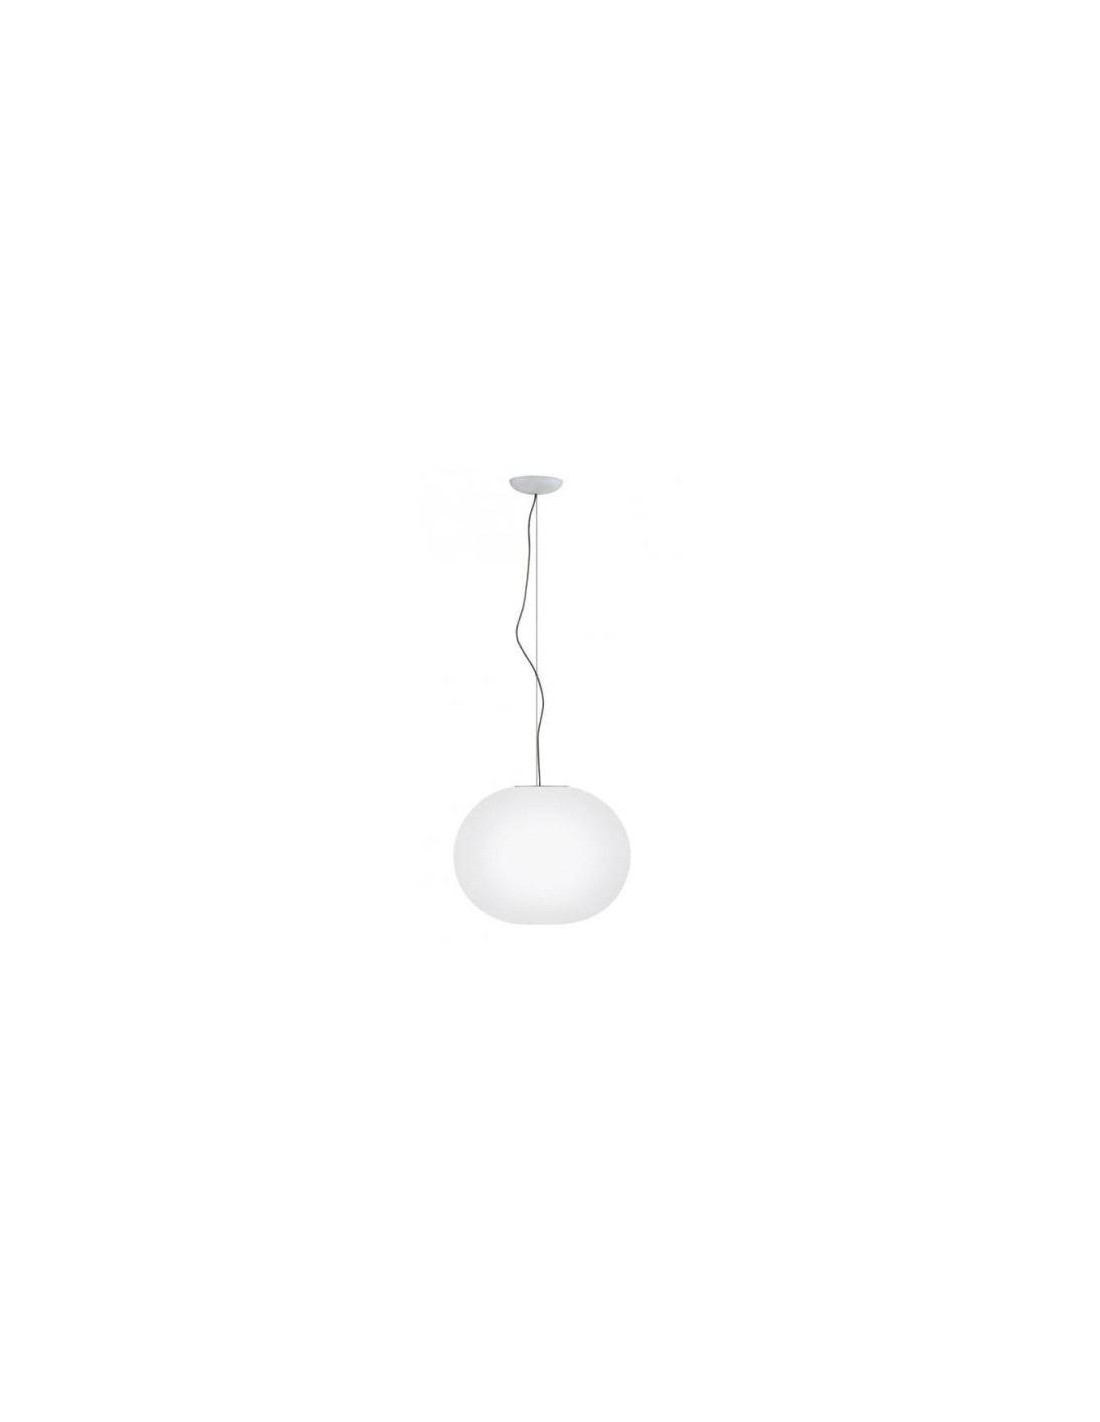 Suspension Glo-Ball S2 Flos